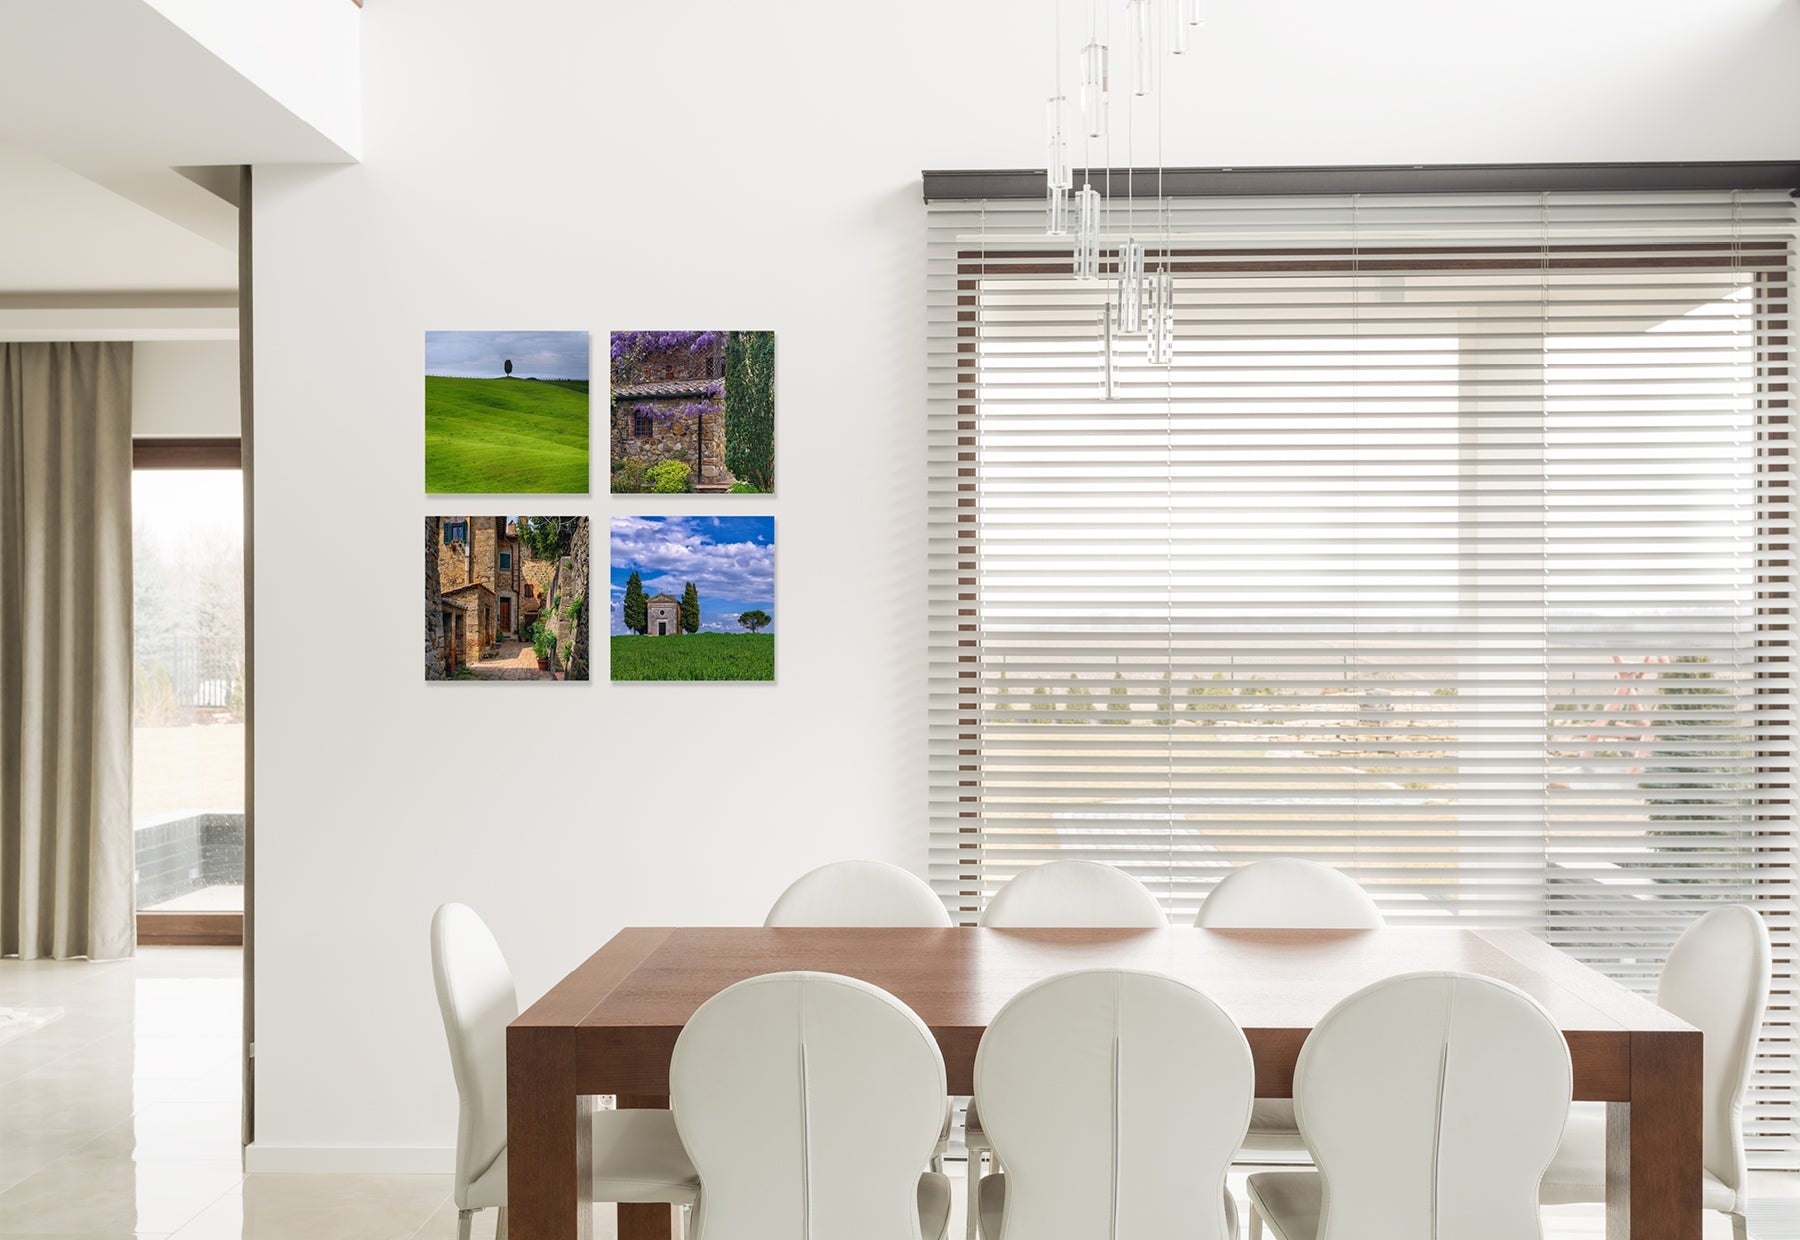 Residential dining room with brown table and white chairs featuring four framed photographs of France by Peter Lik